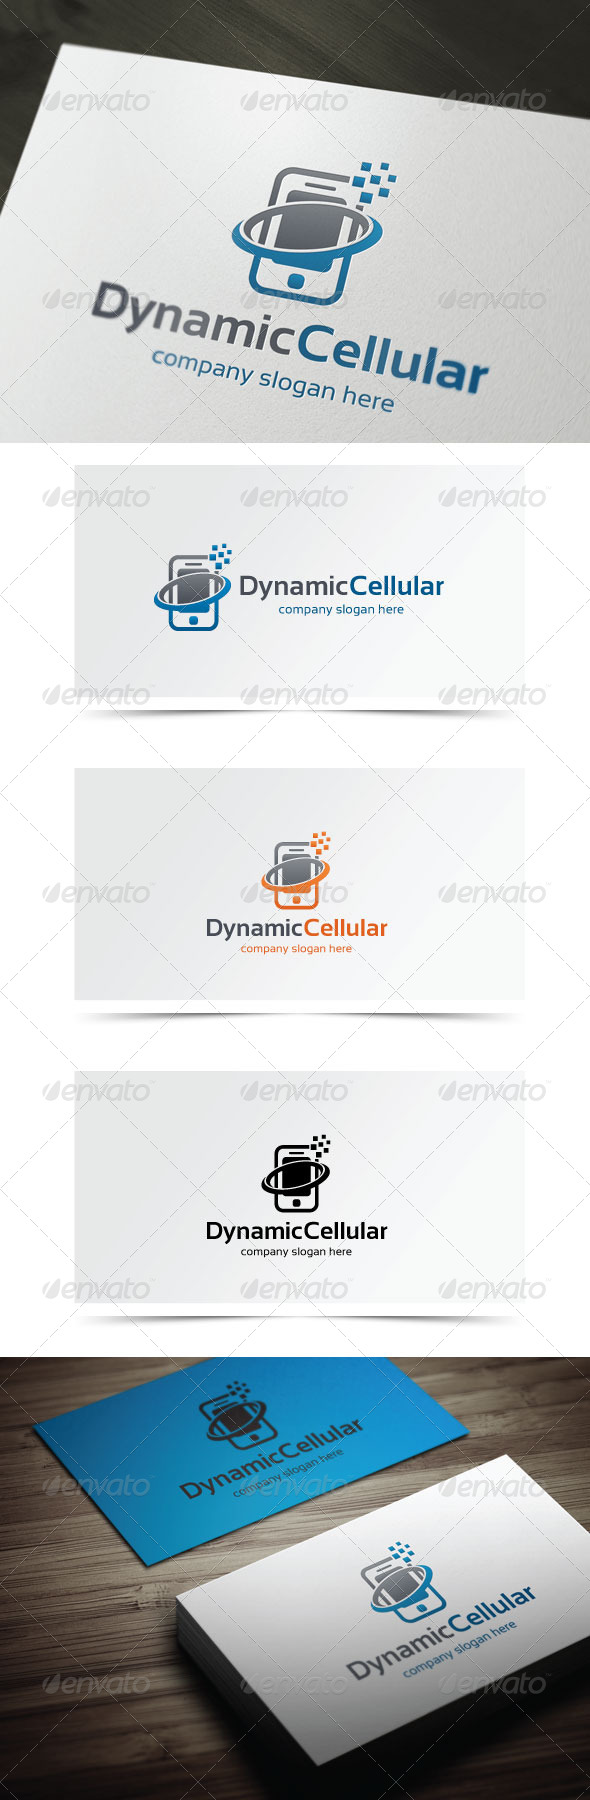 GraphicRiver Dynamic Cellular 5882547